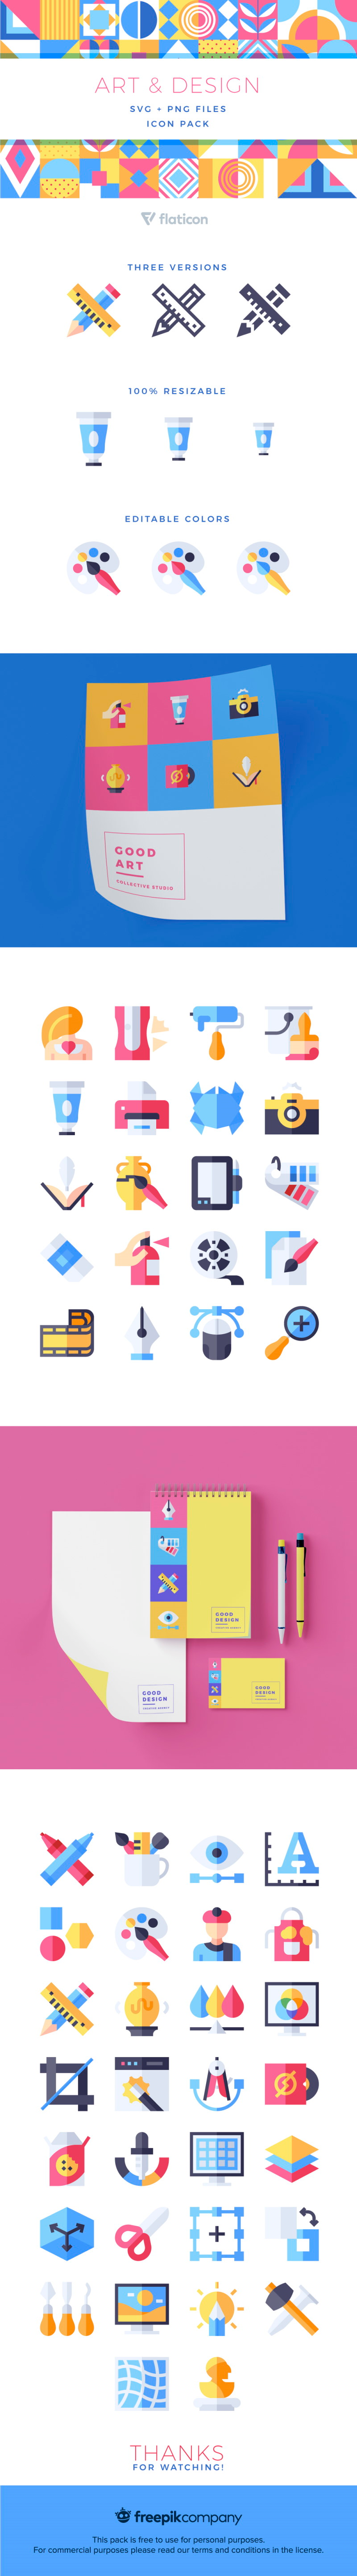 50 Free Art And Design Icons Svg Png Download Icon Design Free Art Art Design